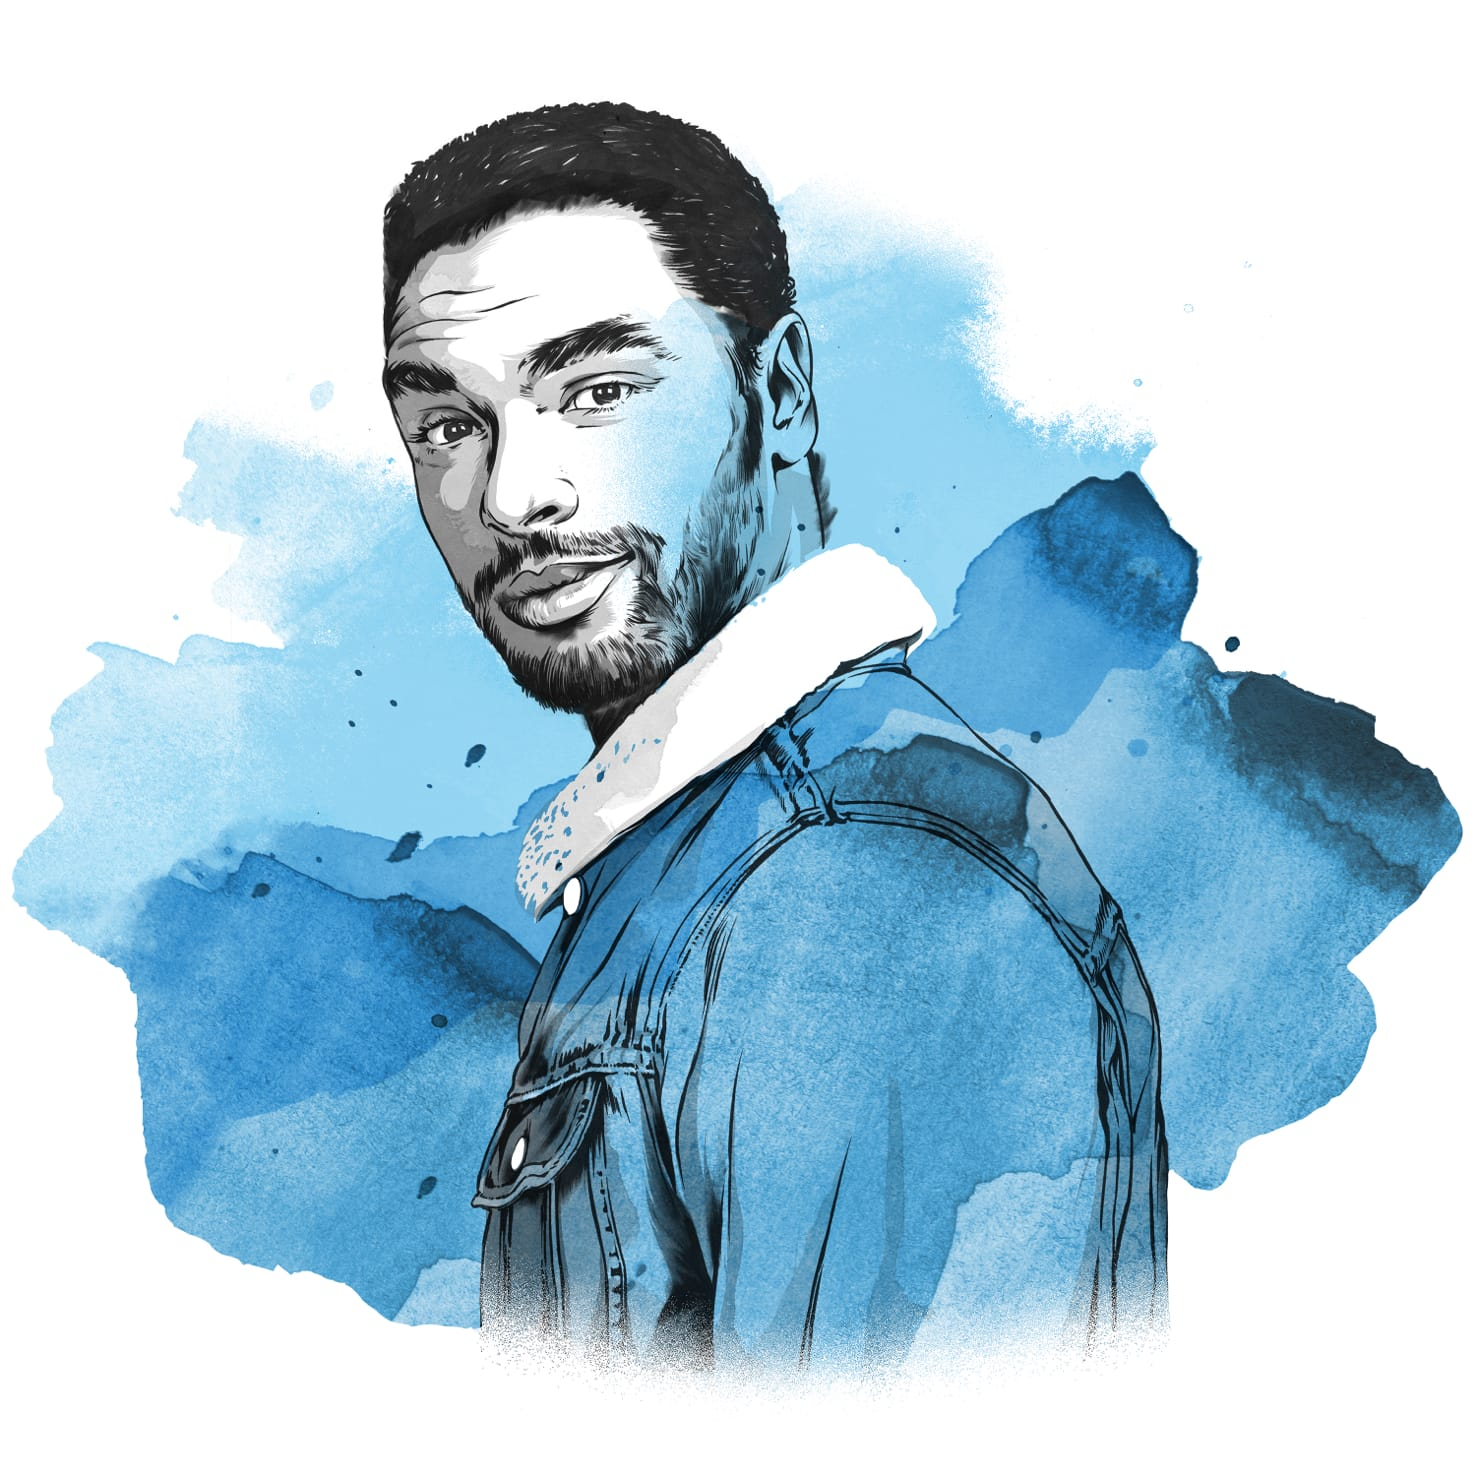 Blue-washed pencil and watercolor sketch of Regé-Jean Page giving you a knowing look.